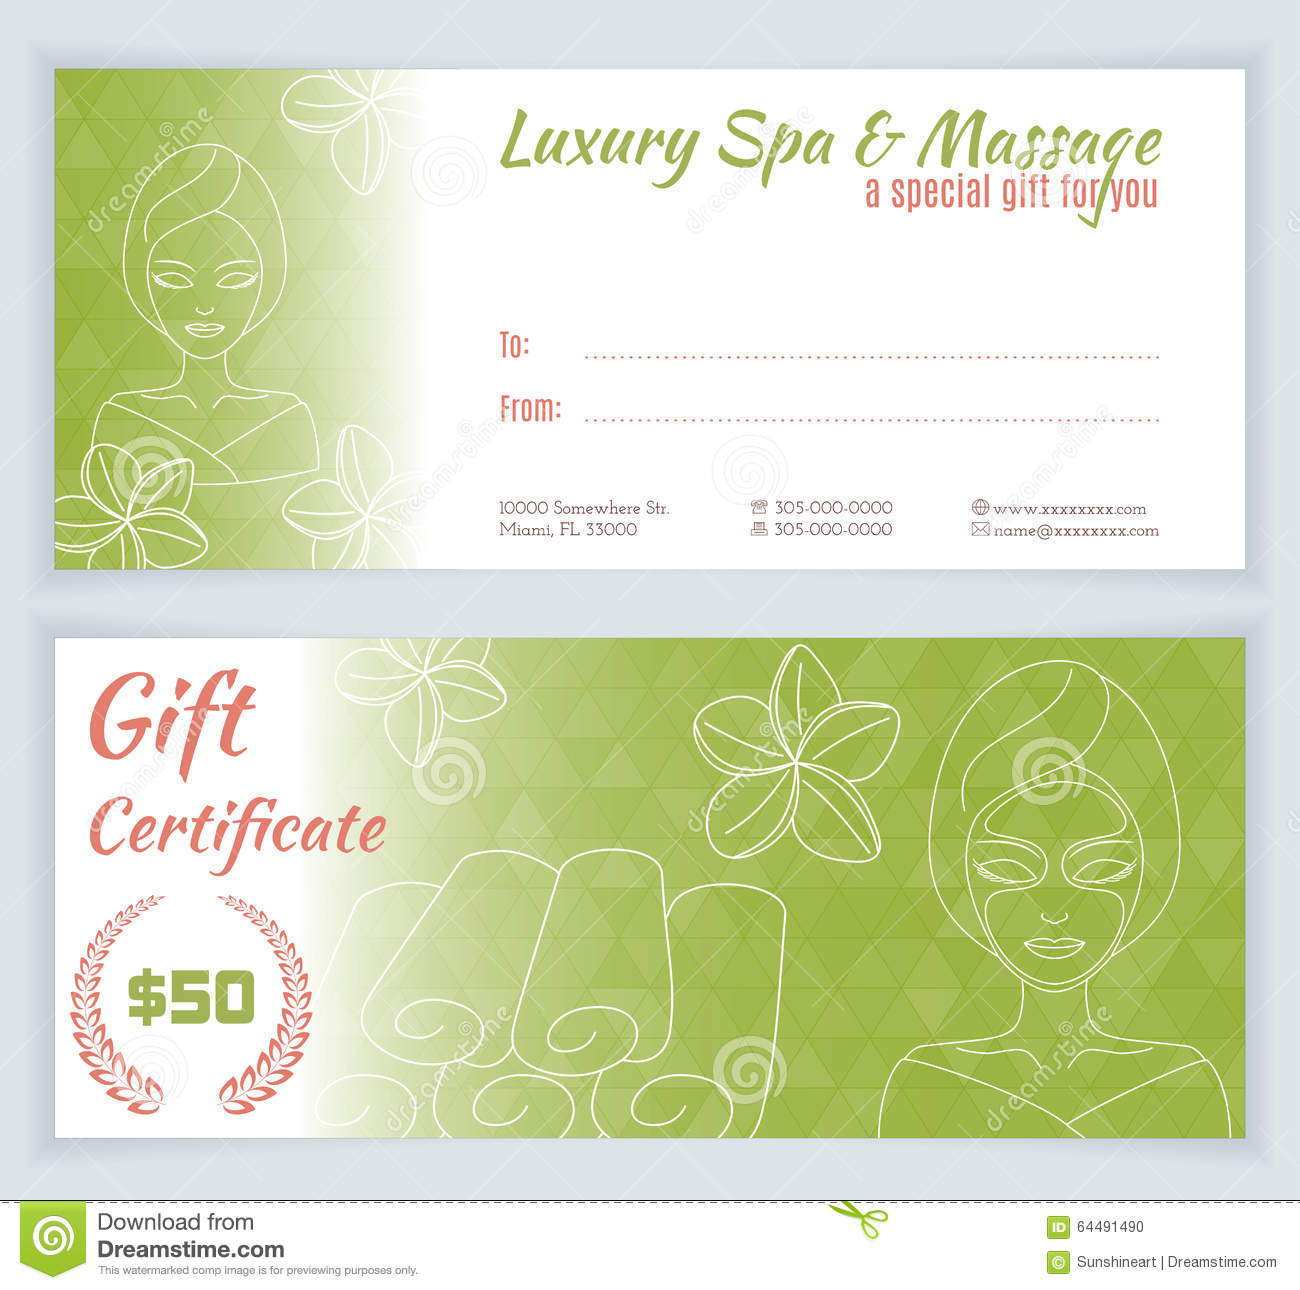 Spa massage gift certificate template stock illustration spa massage gift certificate template royalty free illustration yadclub Gallery